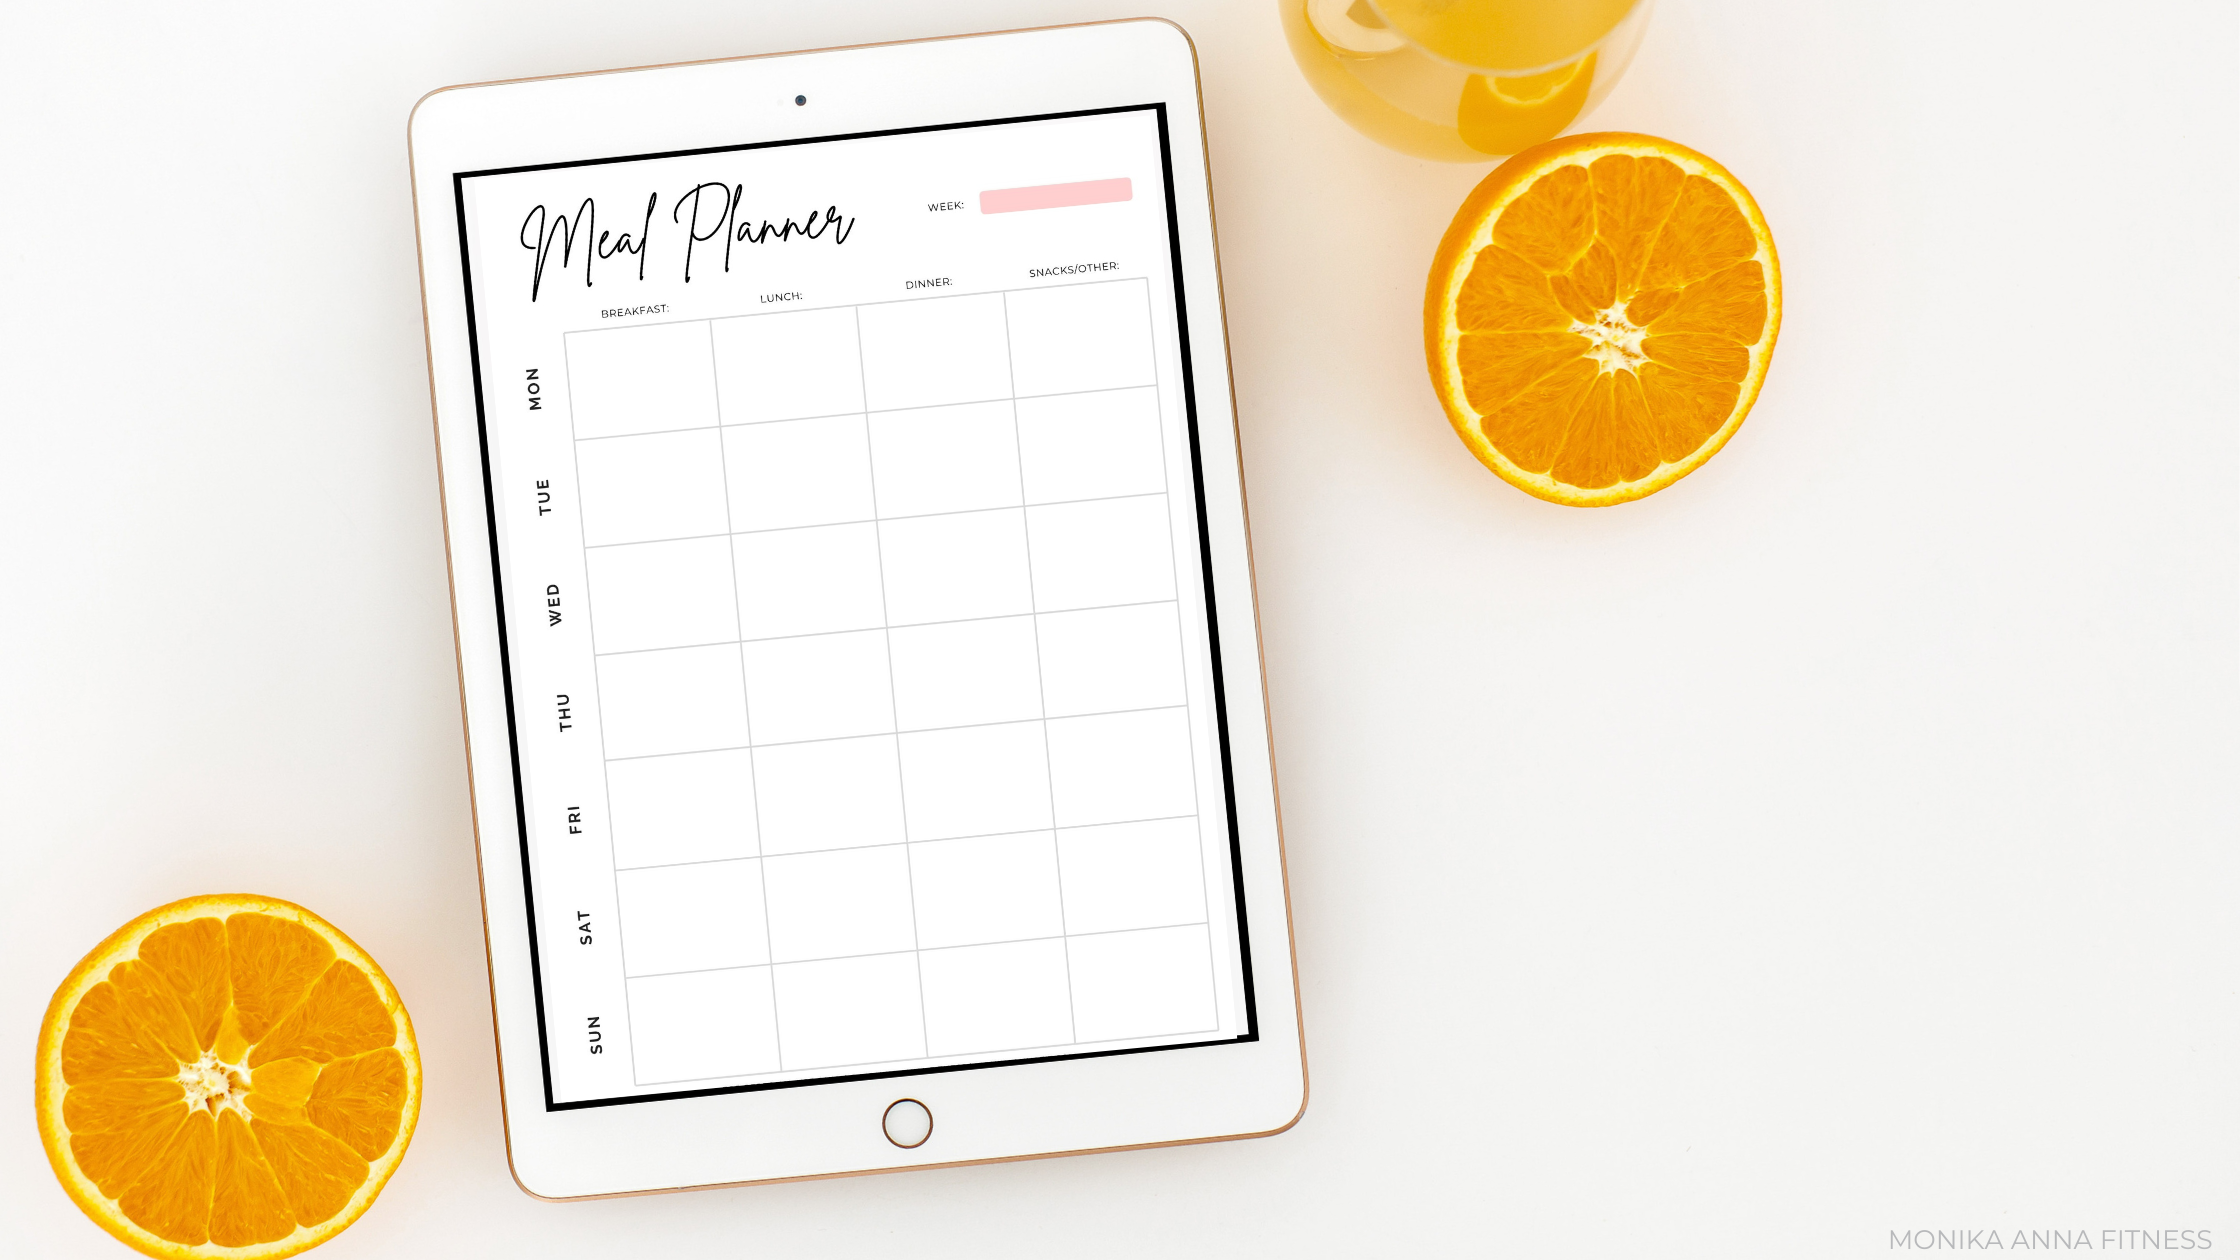 Weekly Meal Planner - Monika Anna Fitness (2)